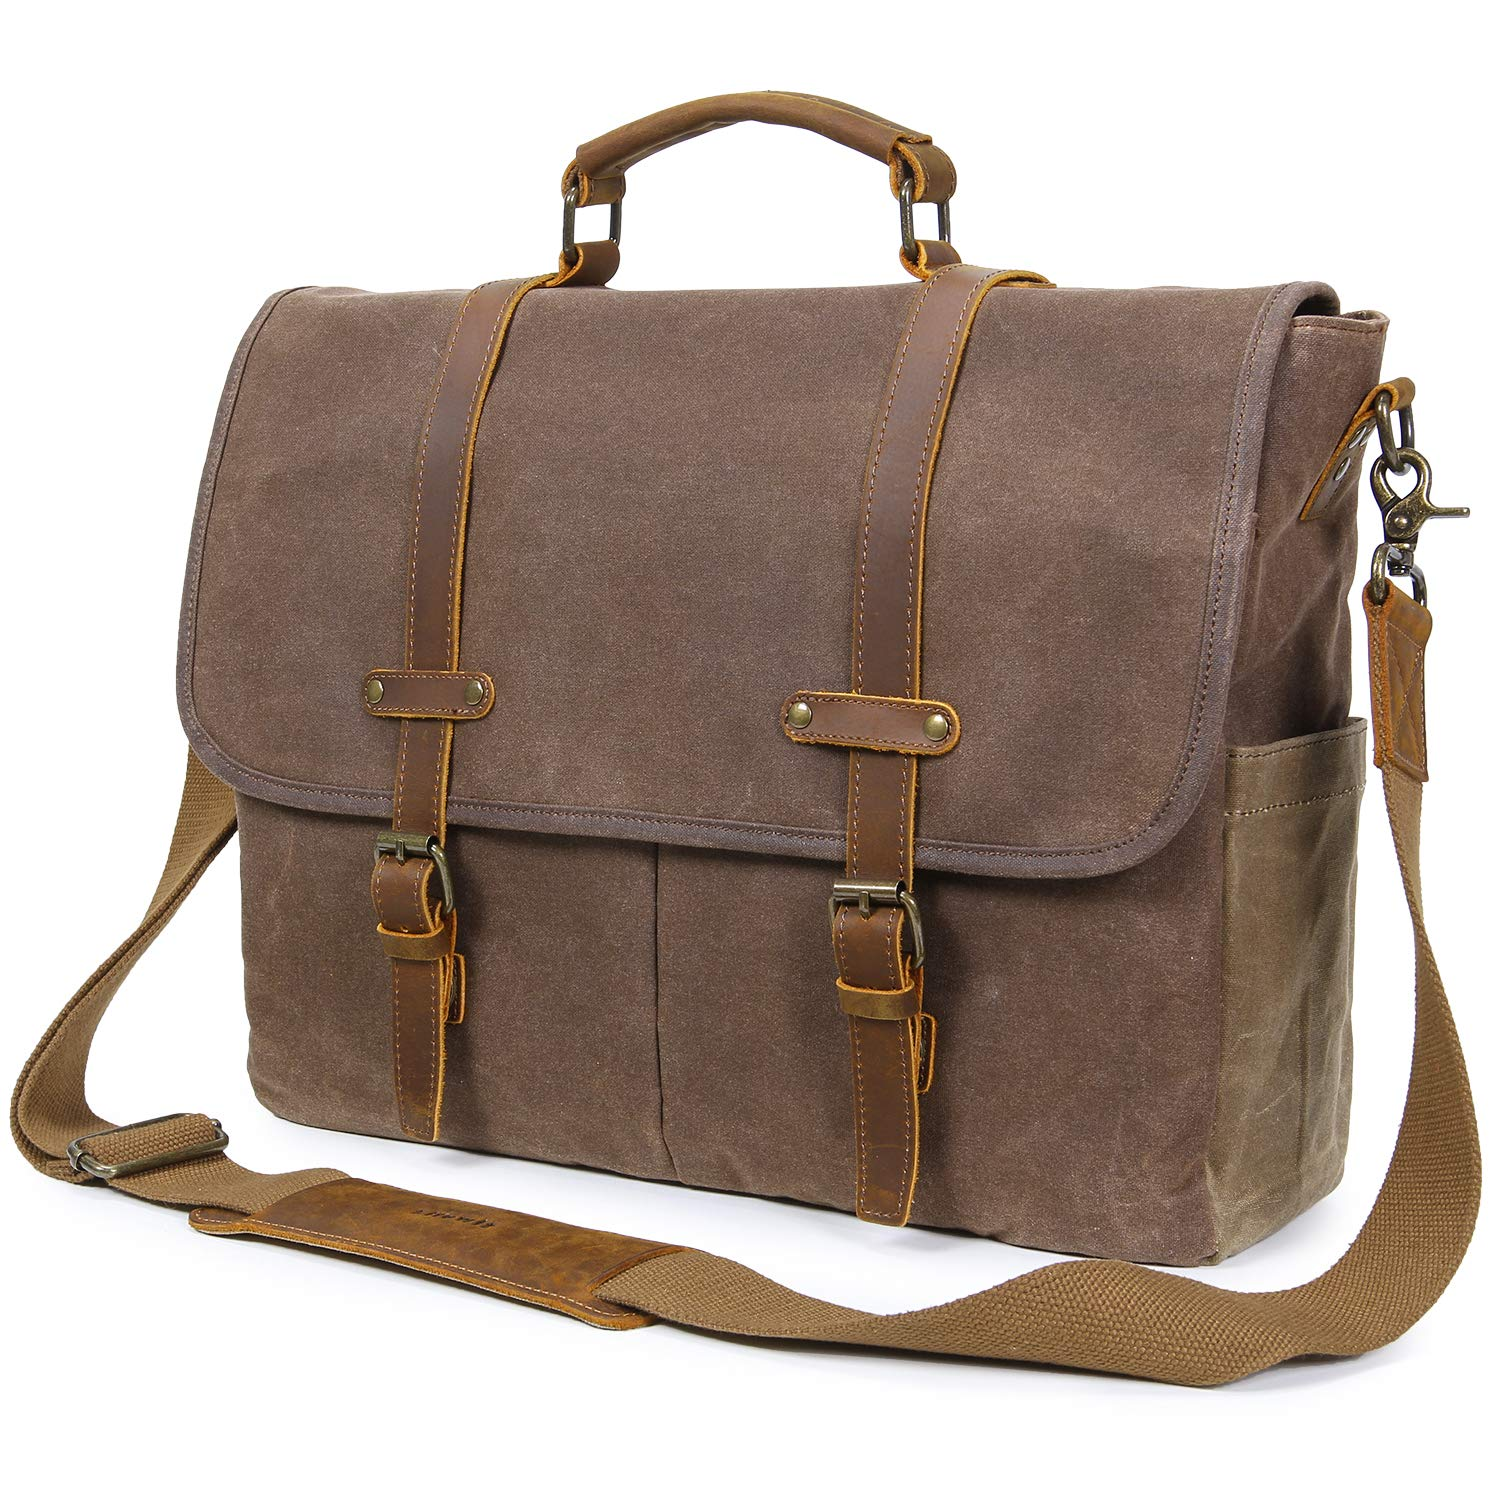 77ff3ec845 Amazon.com  Lifewit Mens Messenger Bag 15.6 Inch Waterproof Vintage Genuine  Leather Waxed Canvas Laptop Satchel Shoulder Bag Computer Briefcase   Computers   ...